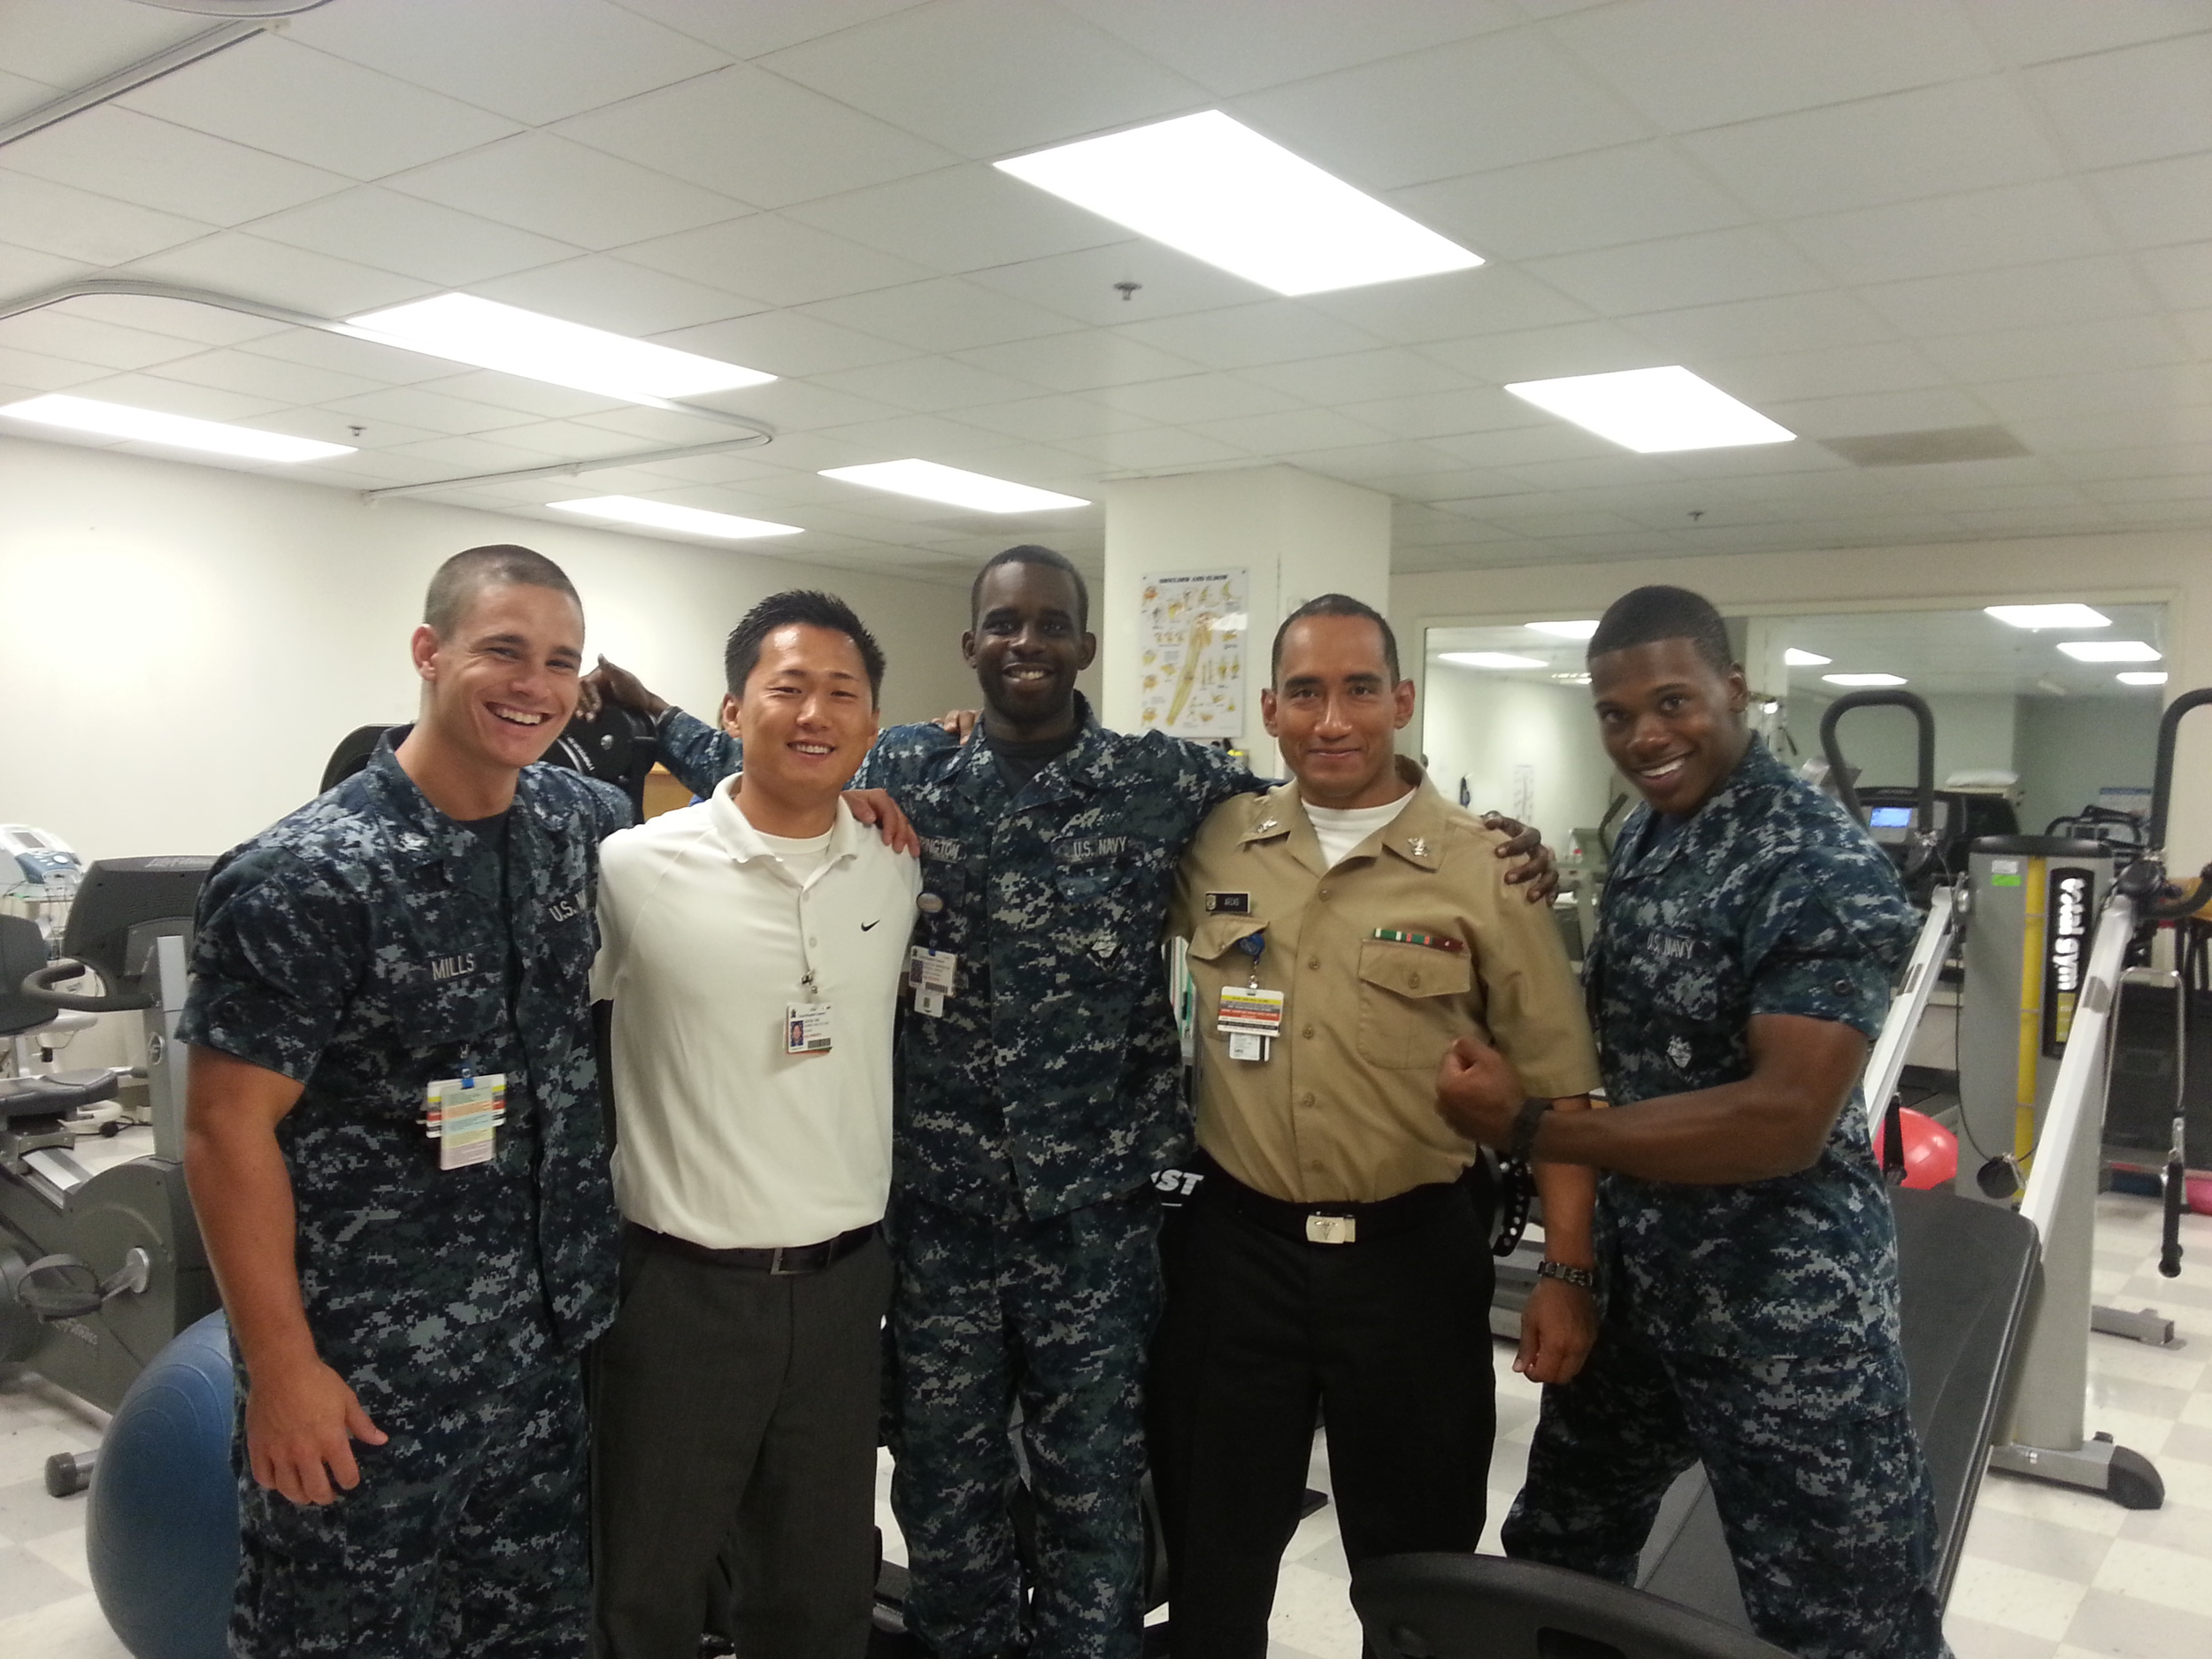 Physical Therapy, Naval Hospital,Lemoore, CA